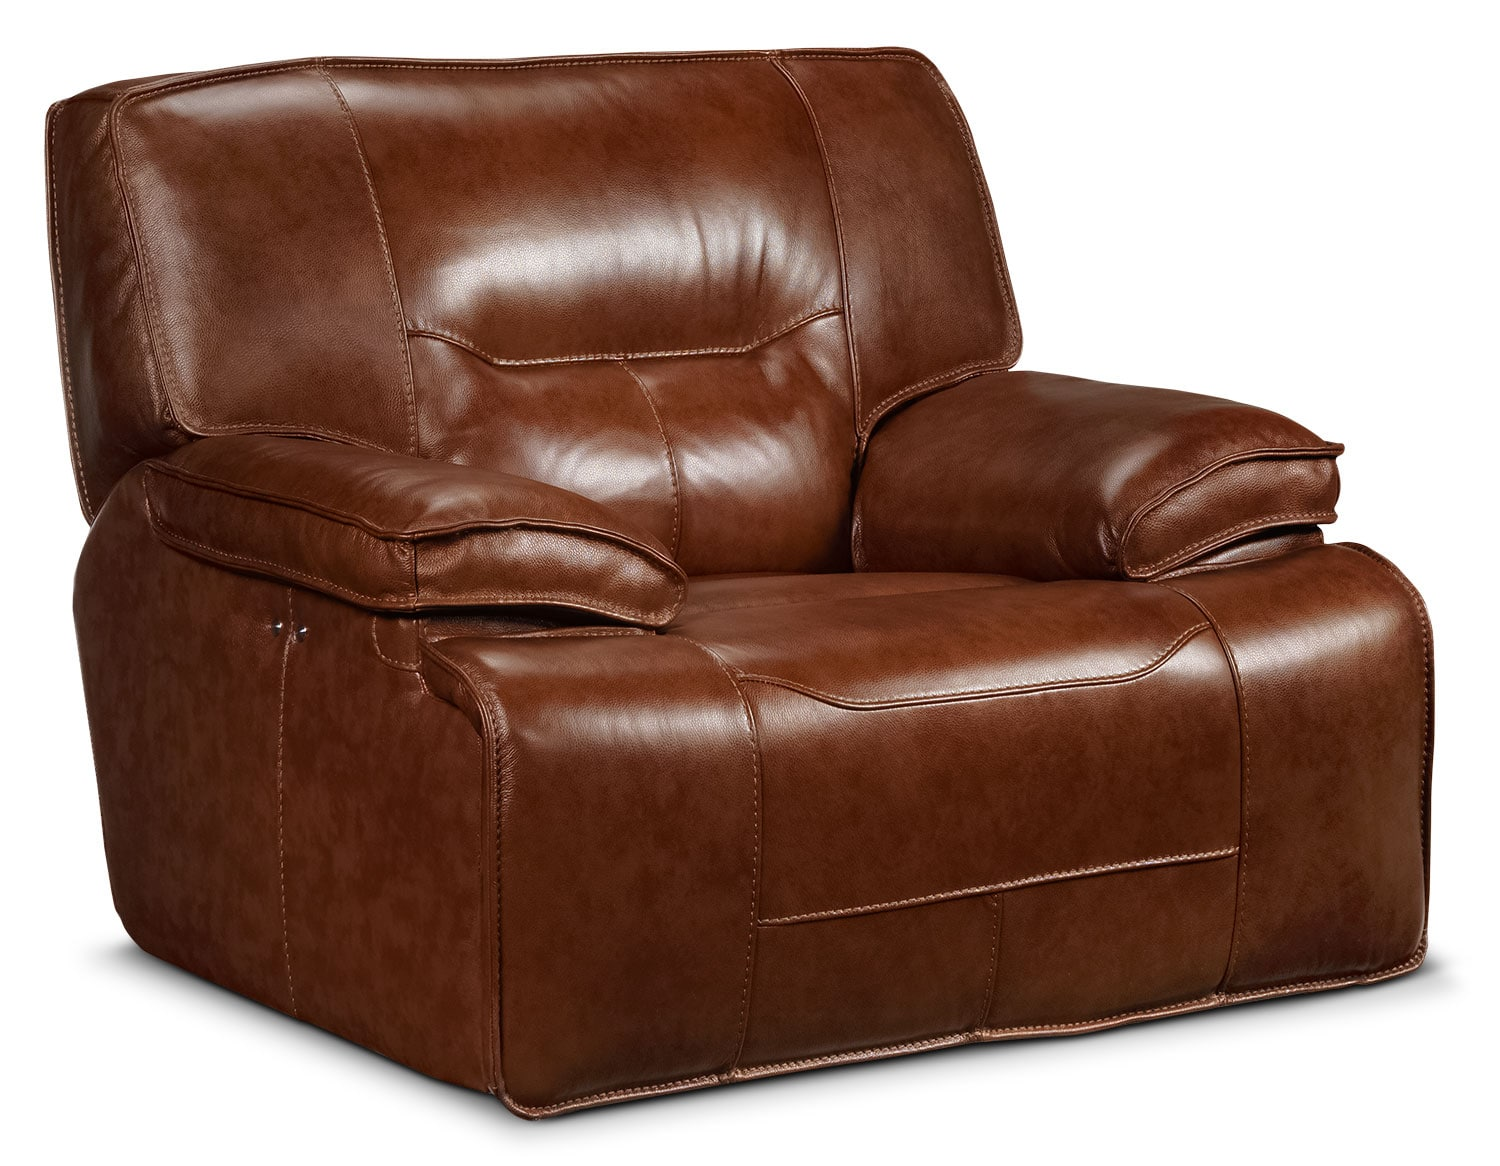 Baxter Power Glider Recliner - Chestnut